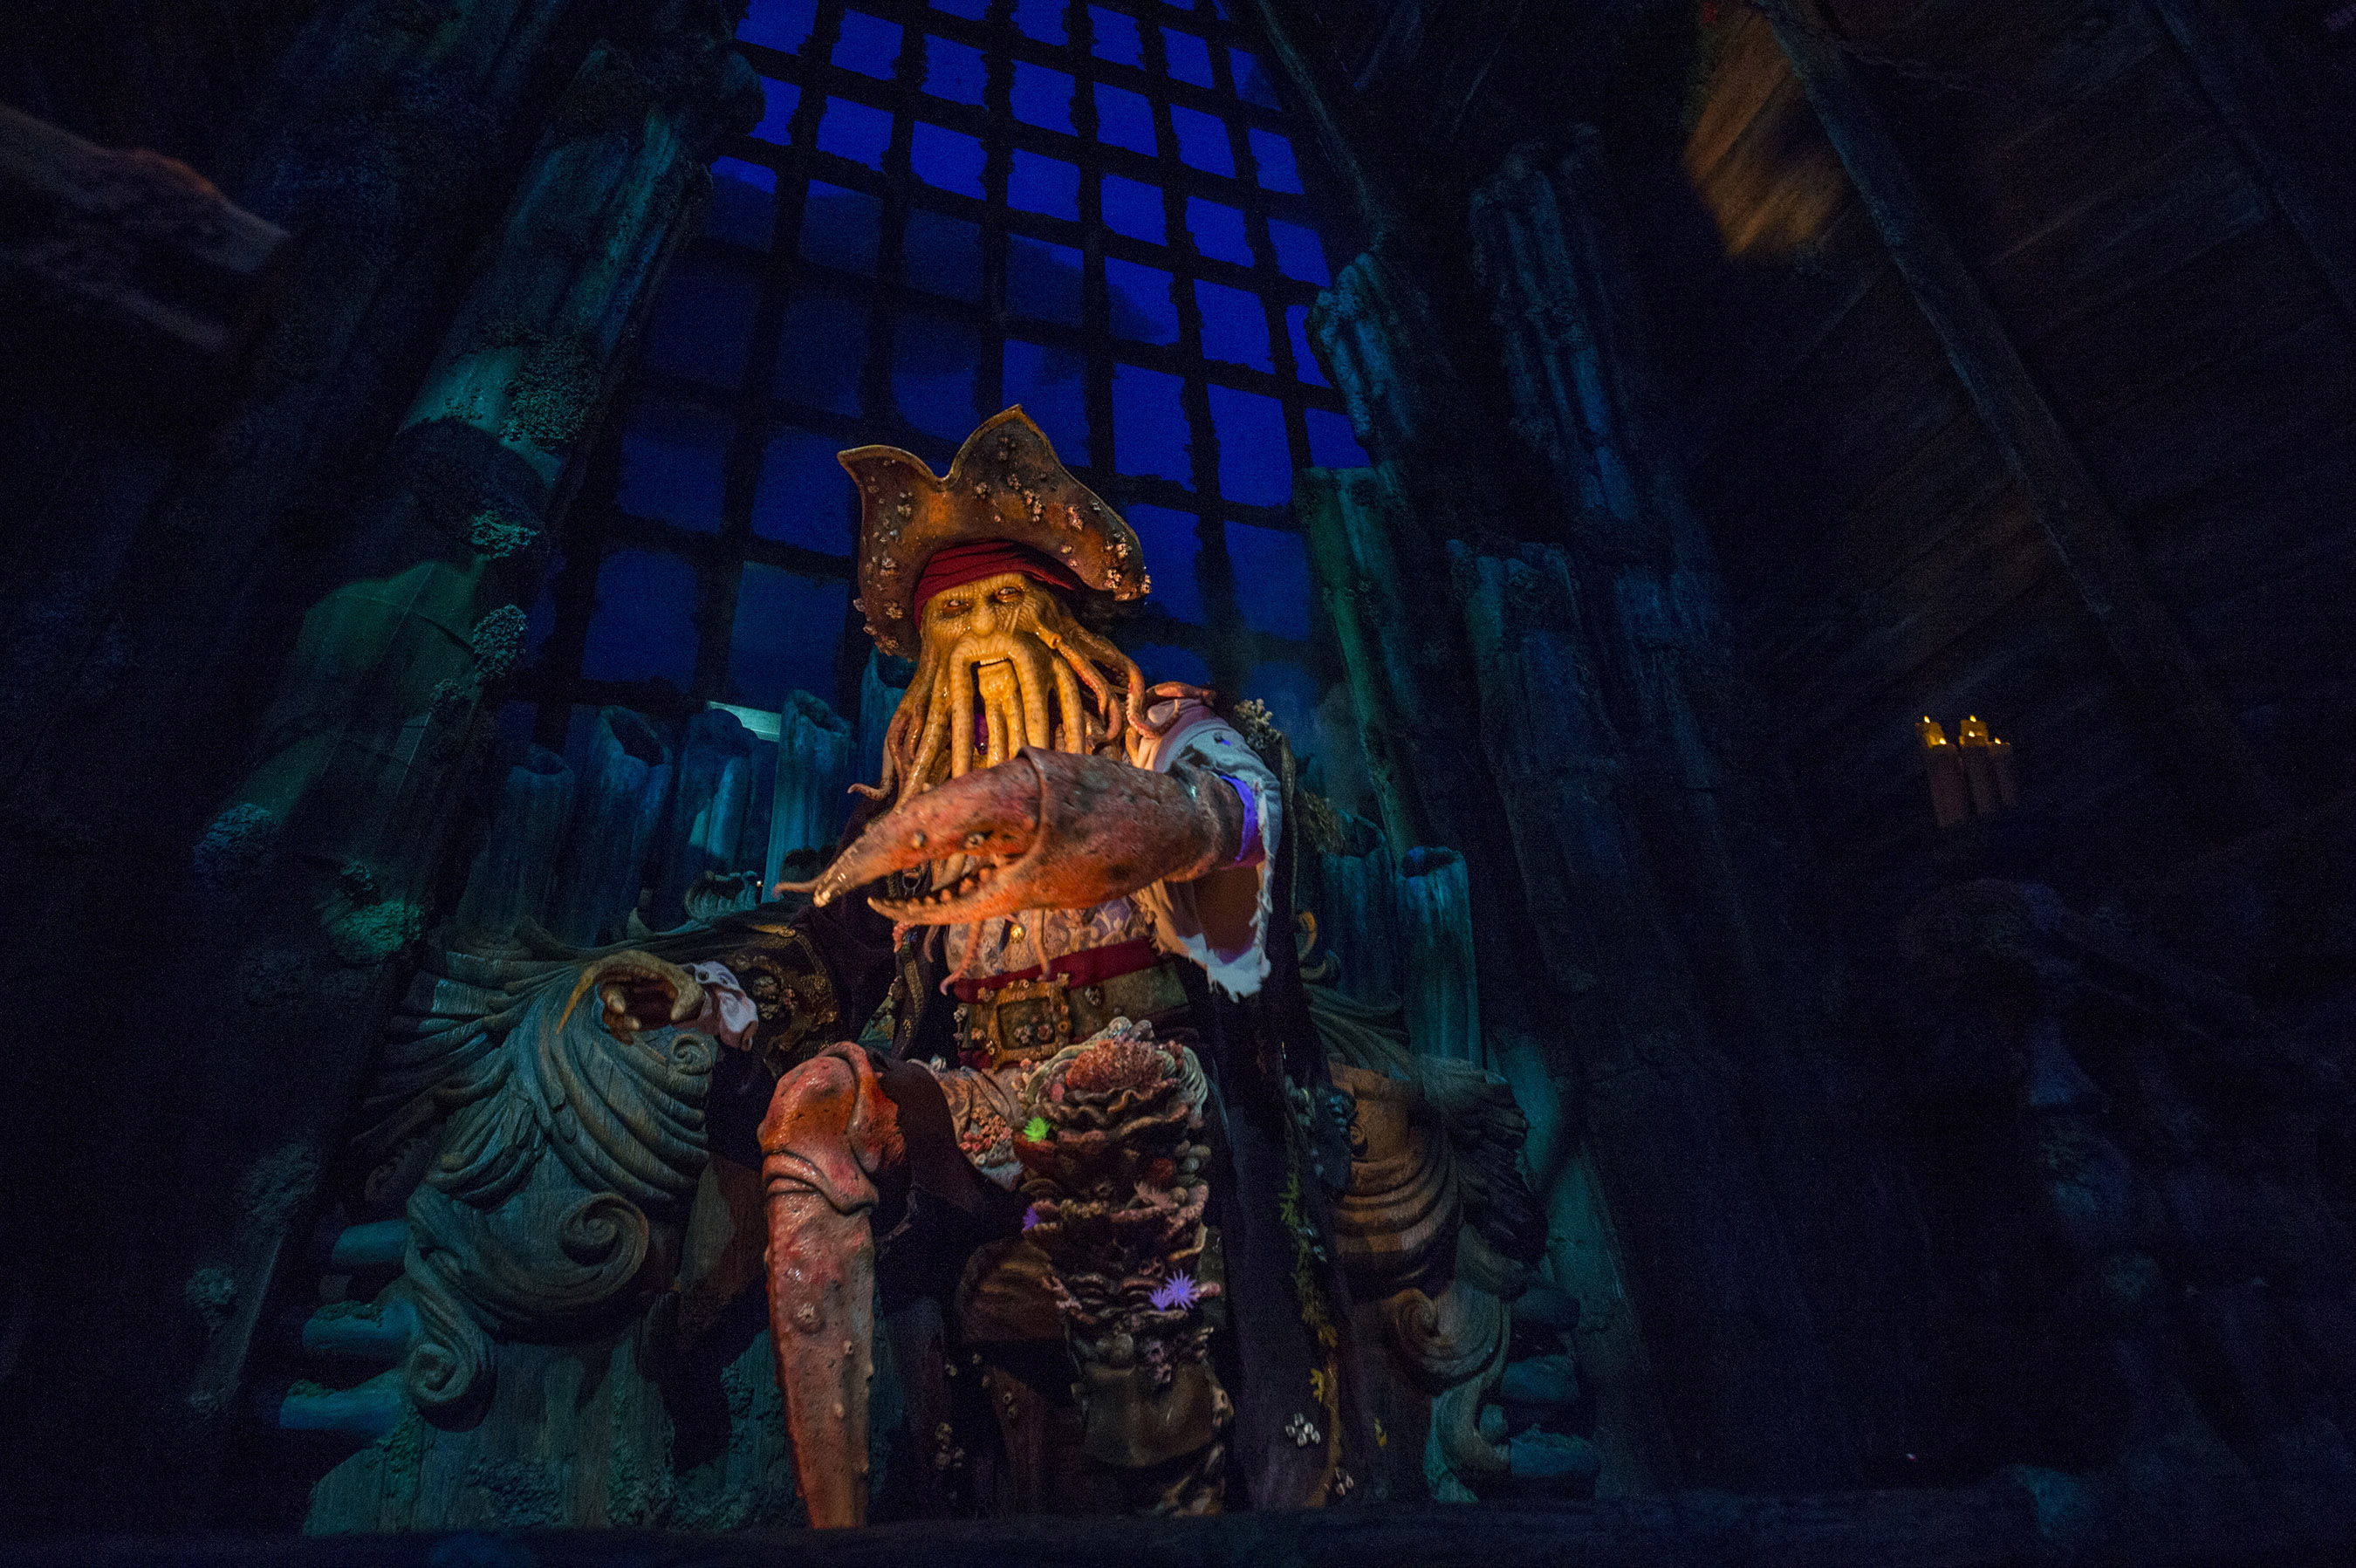 Pirates of the Caribbean: Battle for the Sunken Treasure at Shanghai Disneyland